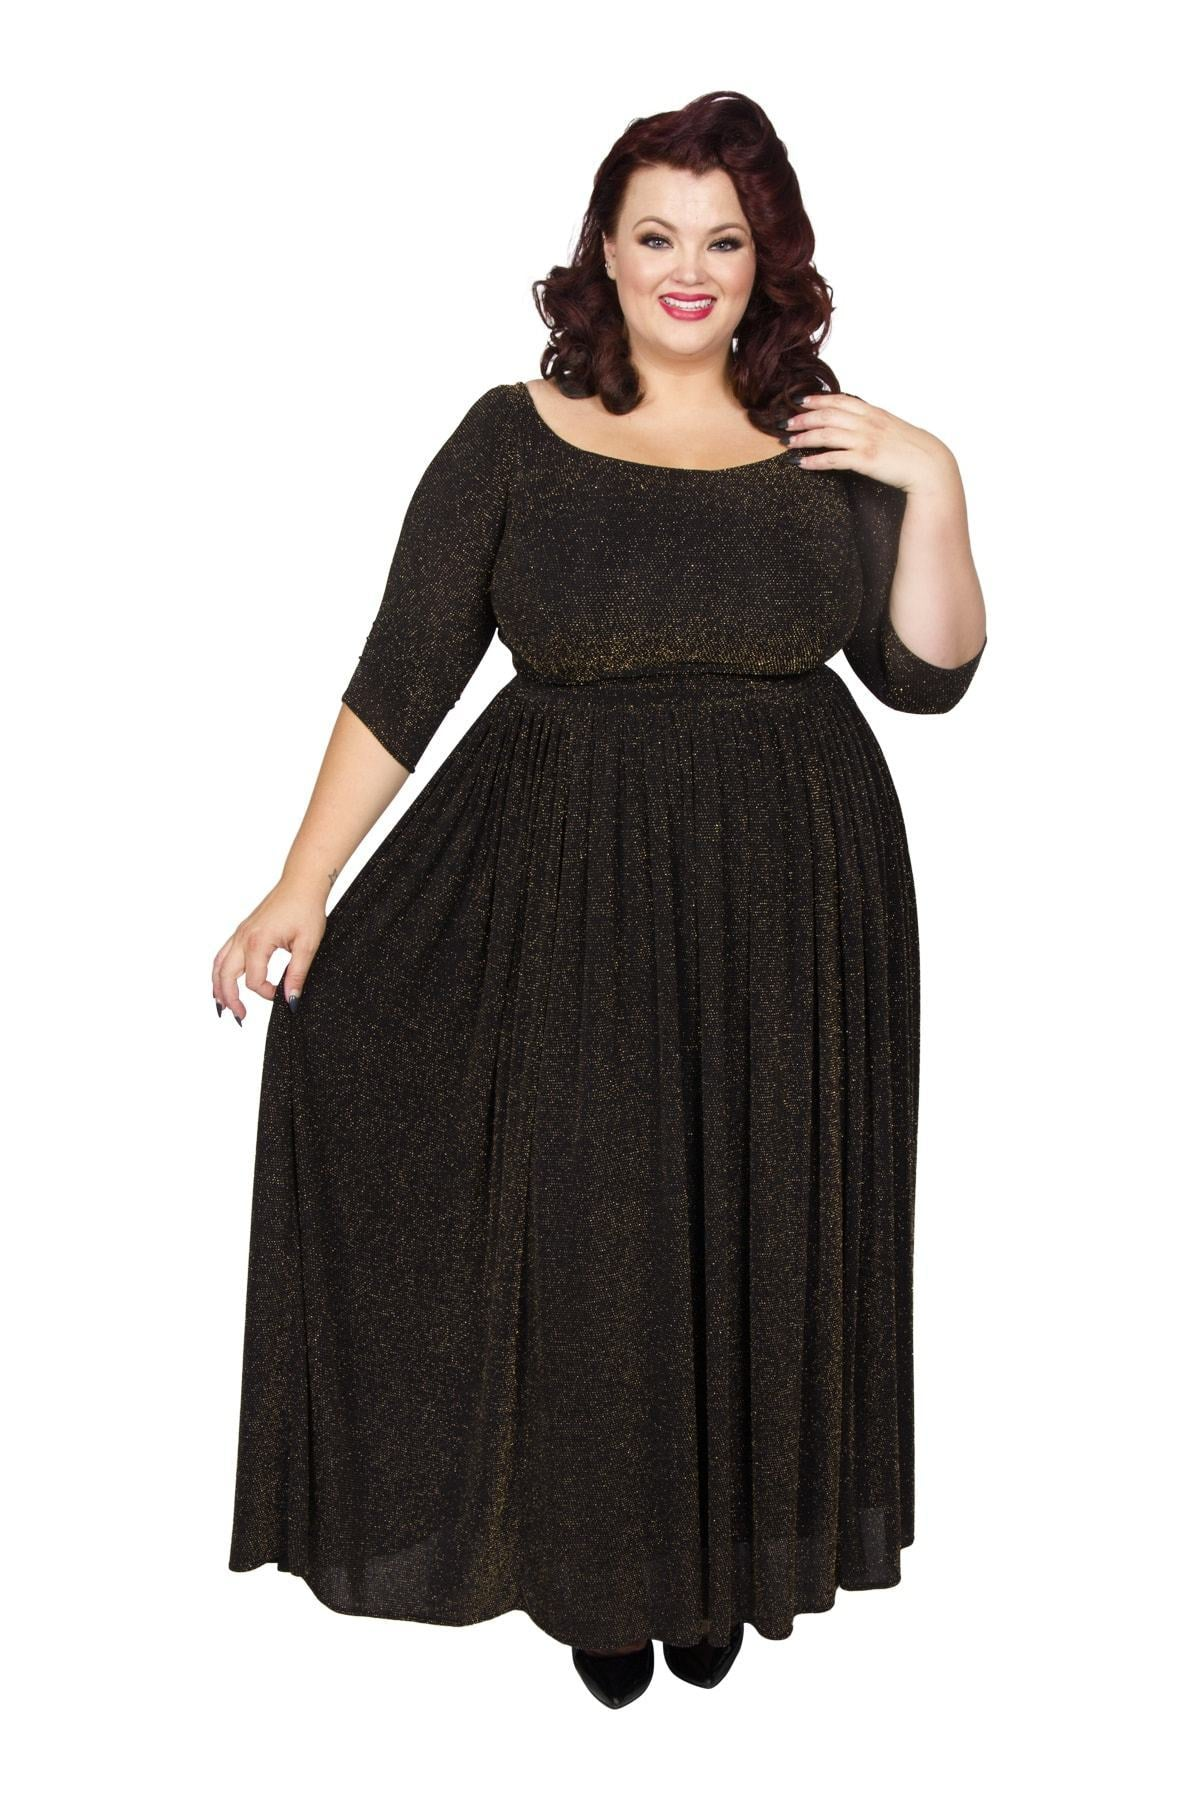 ce72bf9a1b748 Plus Size Maxi Dresses Ebay Uk